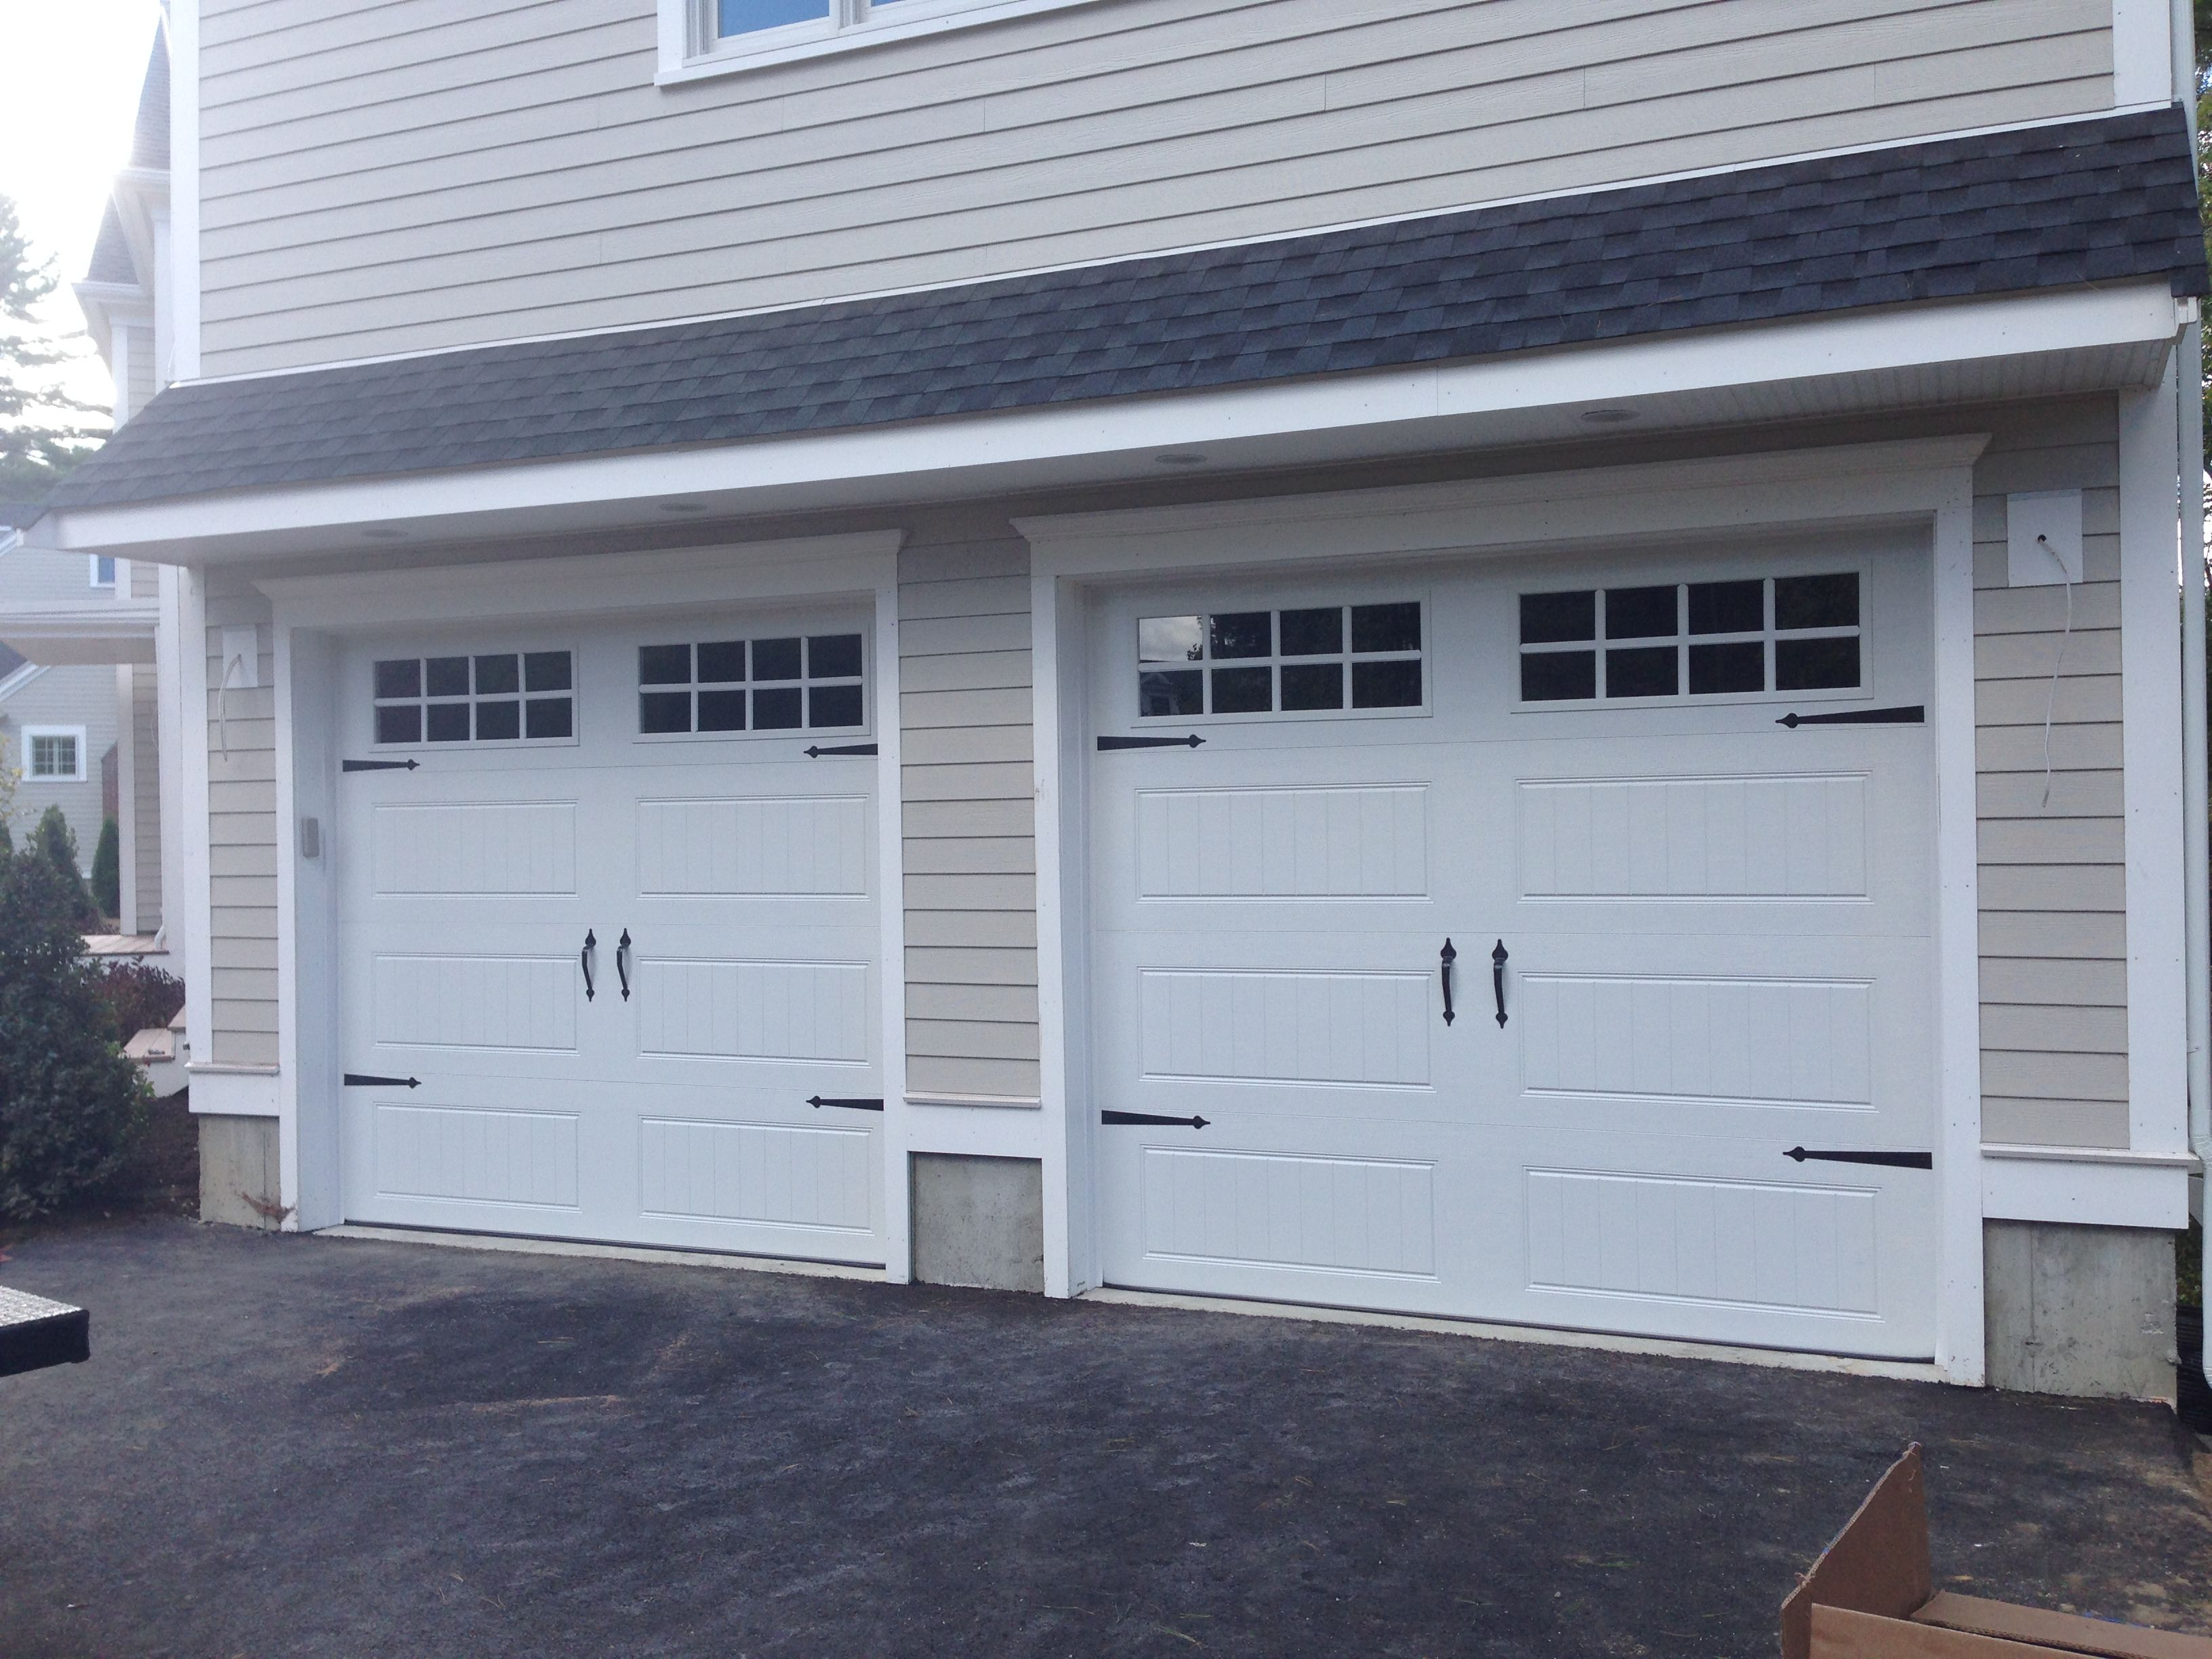 2448 #735B4F Doors Model 5916 Long Panel Steel Carriage House Style Garage Doors  pic Black Steel Garage Doors 36513264